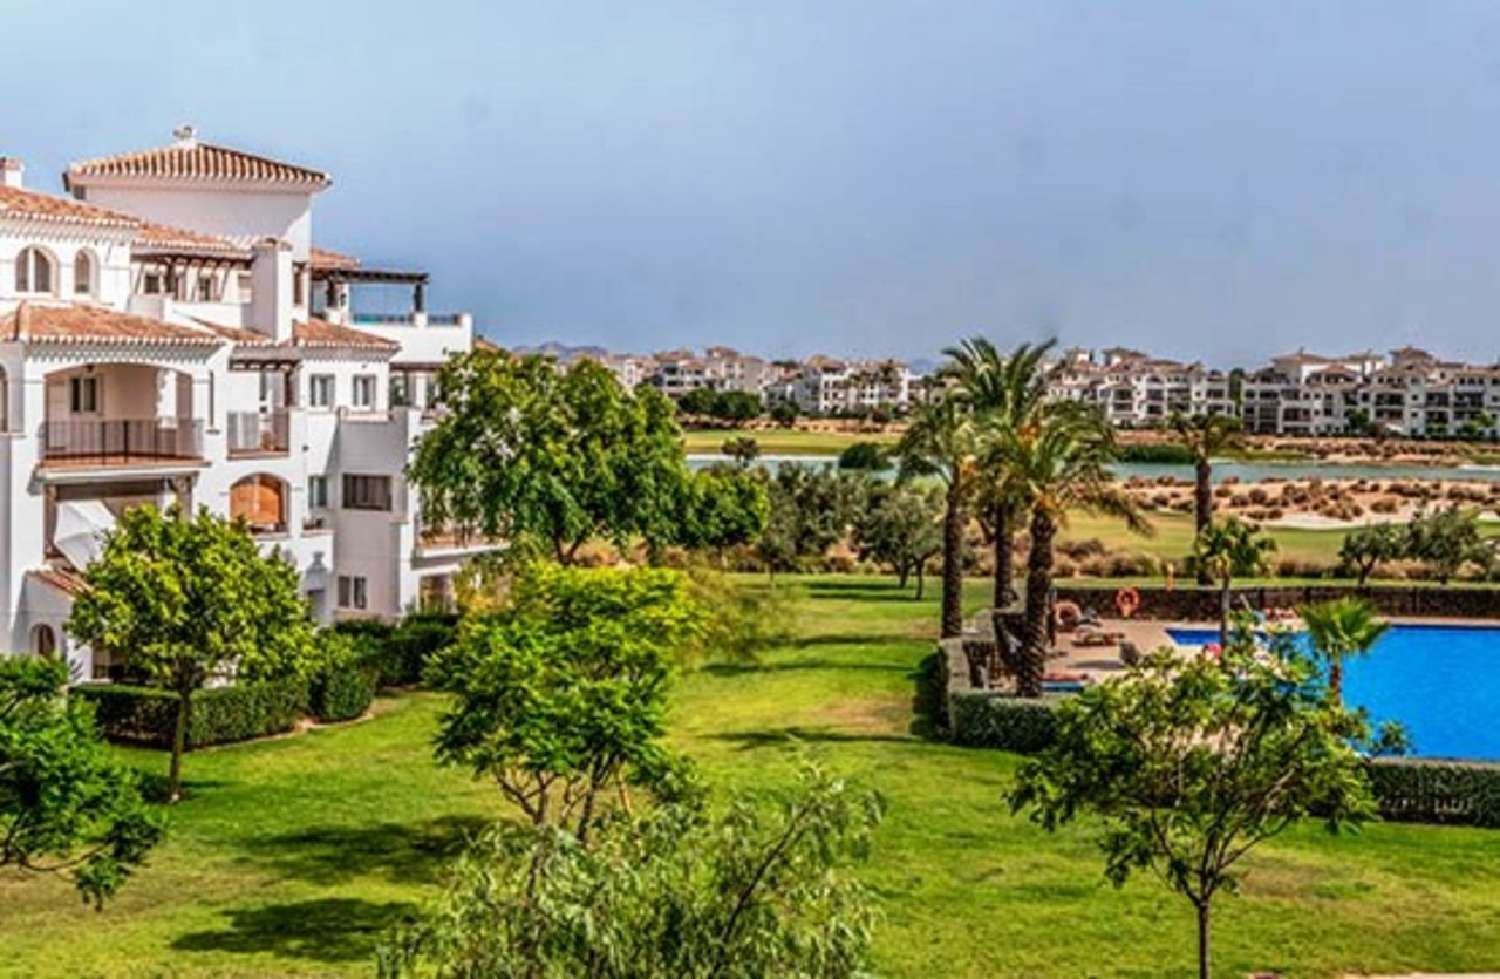 hacienda riquelme golf resort murcia appartement foto 3892777